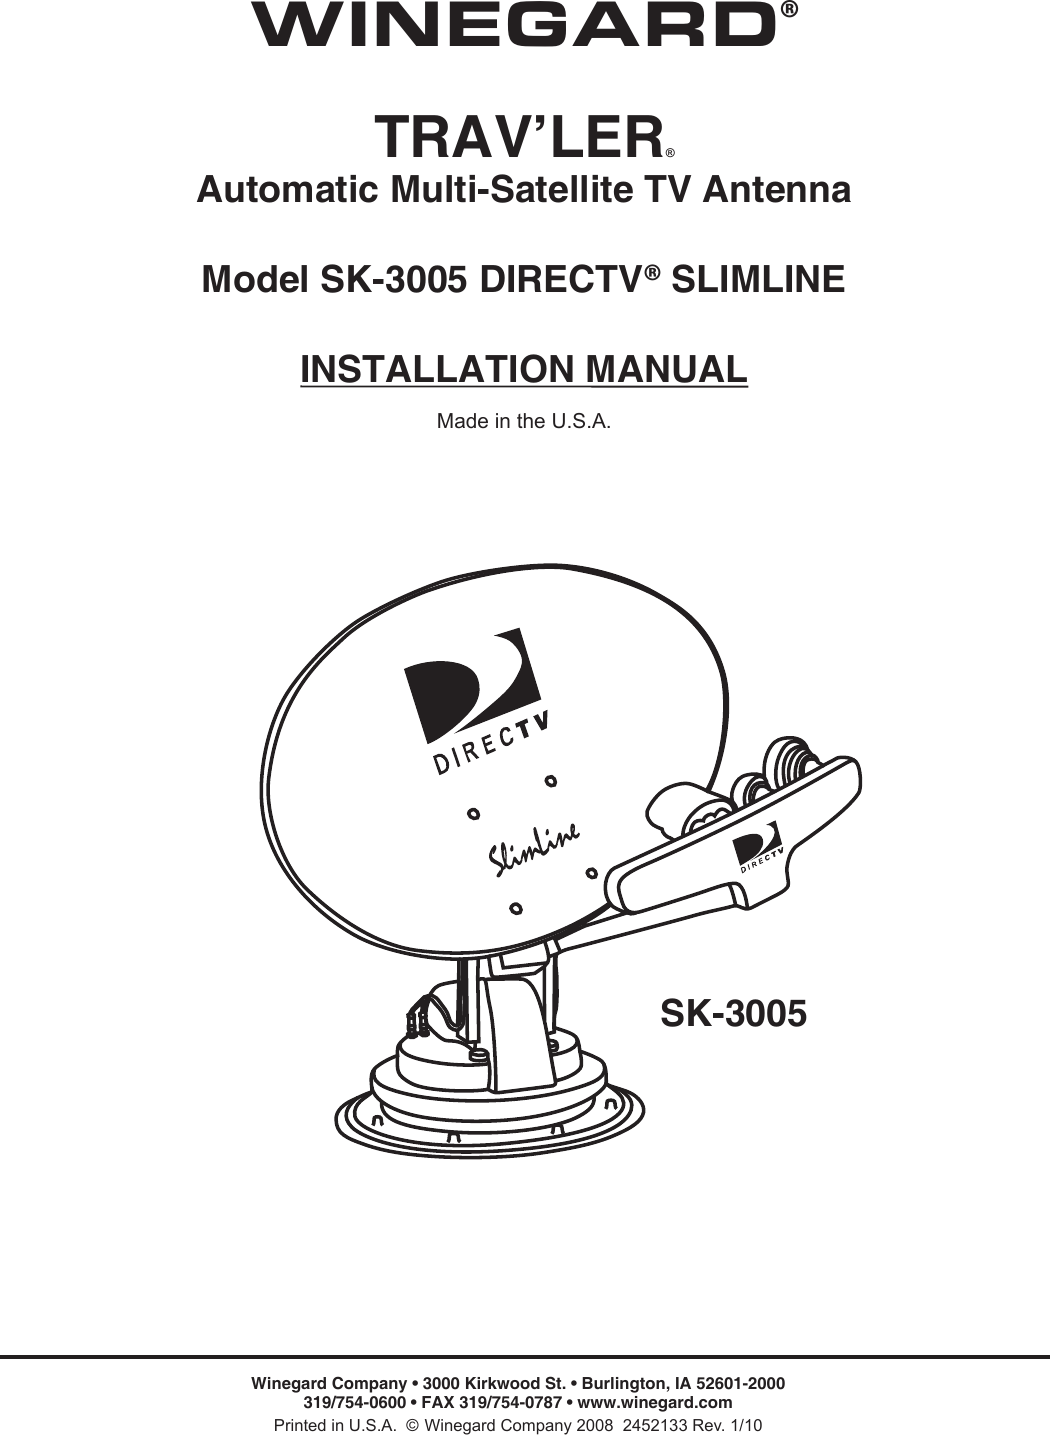 Winegard Satellite Tv System Sk 3005 Users Manual Wiring Diagram Page 1 Of 12